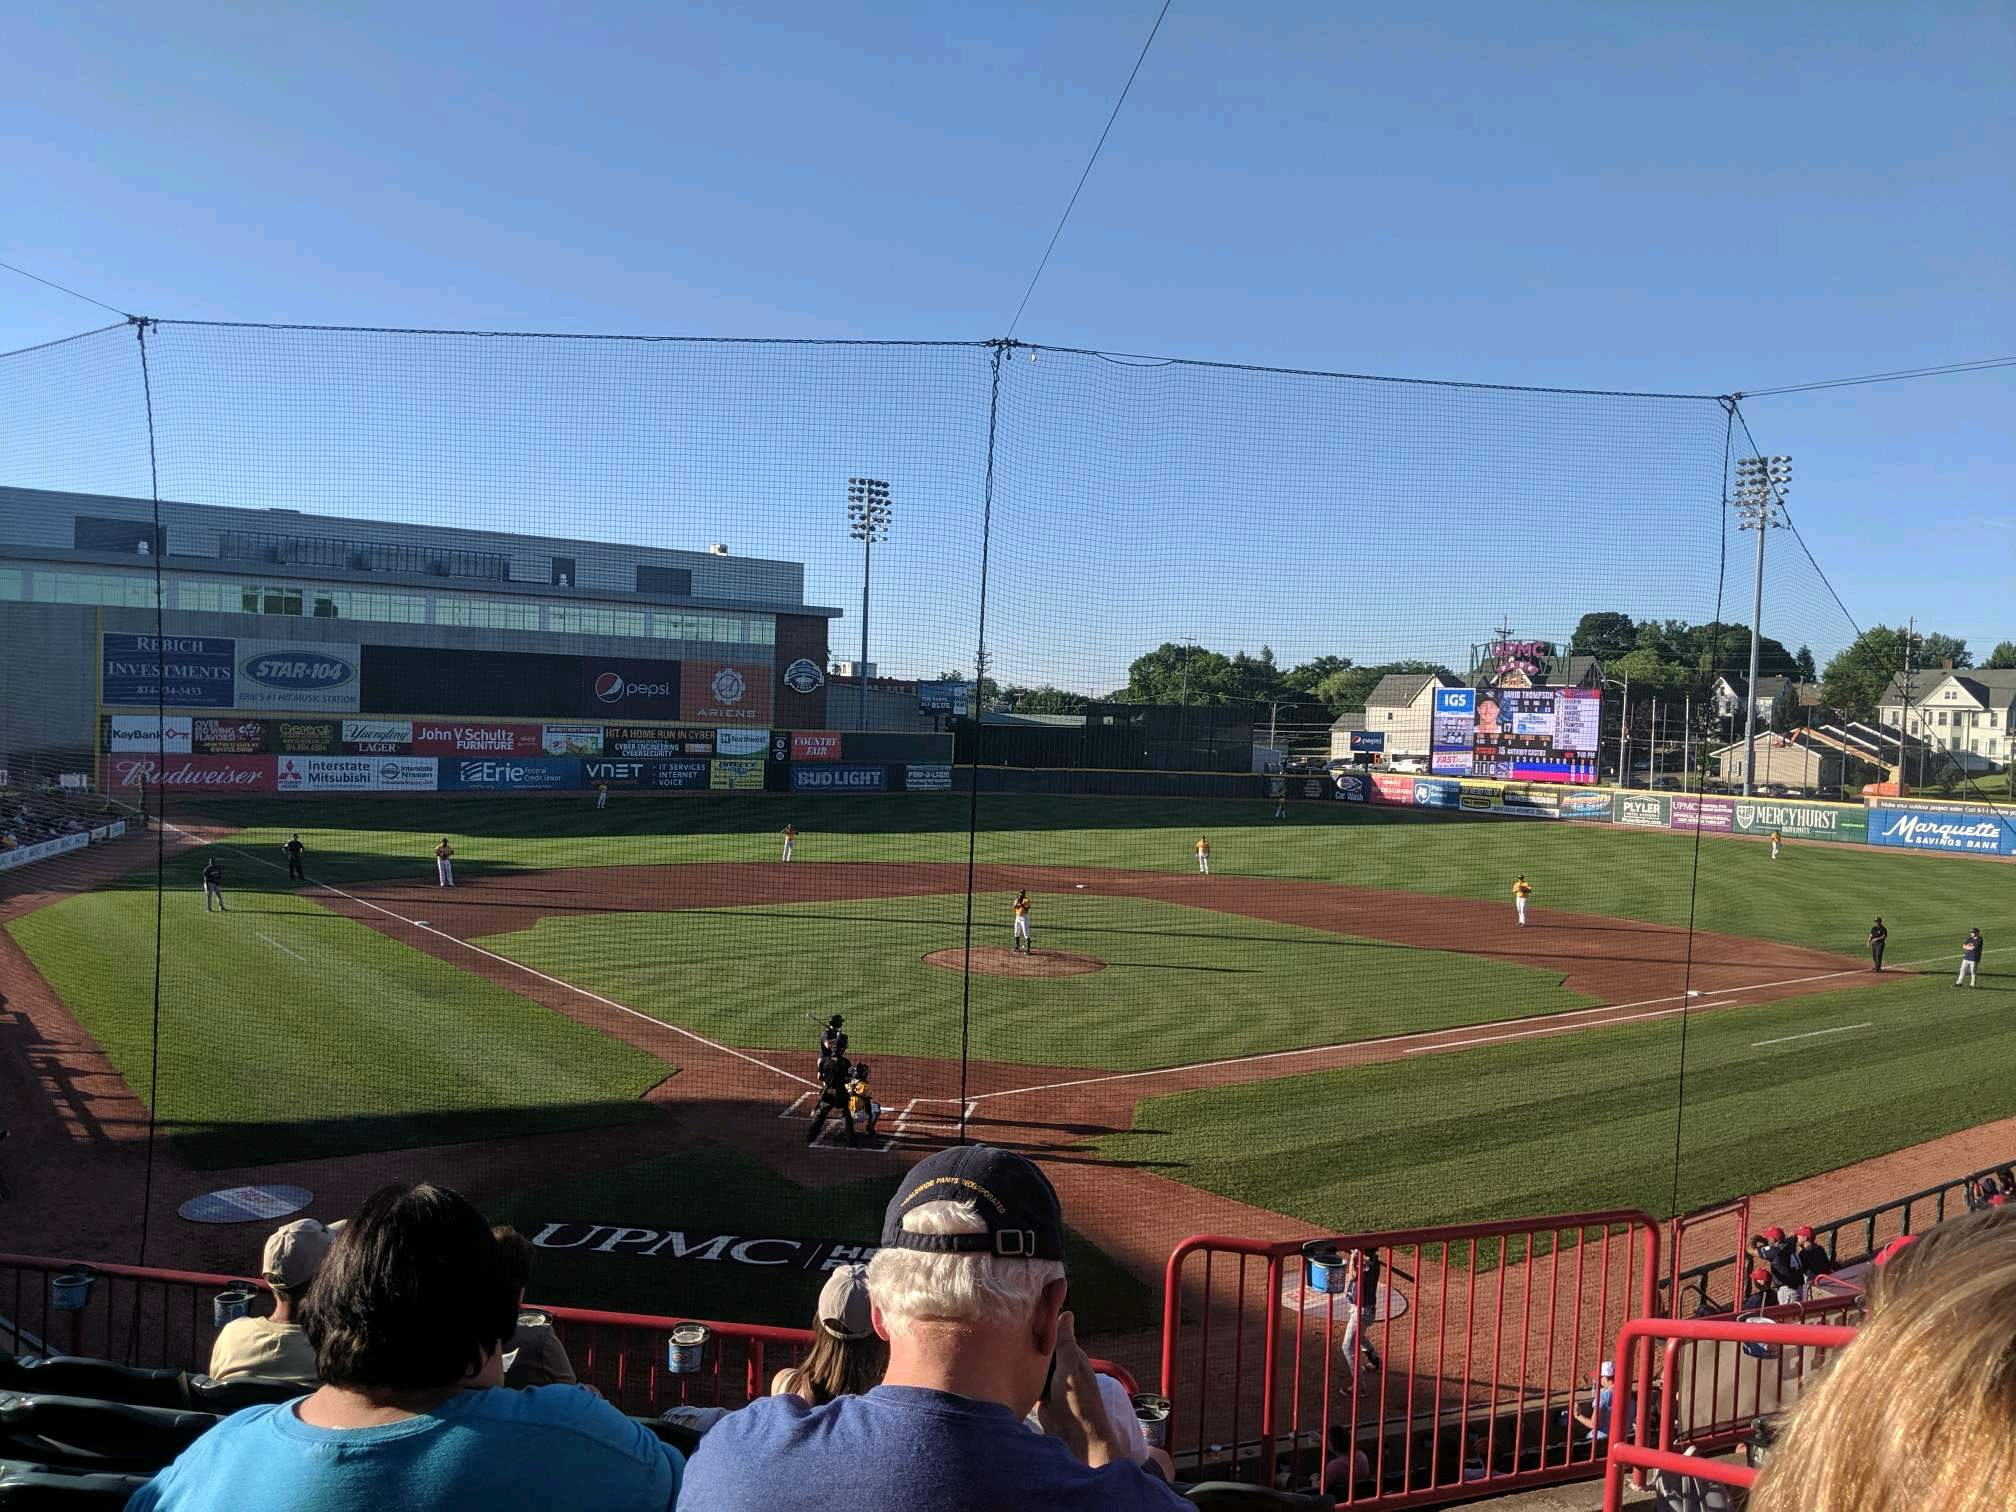 UPMC Park Section 206 Row FF Seat 3